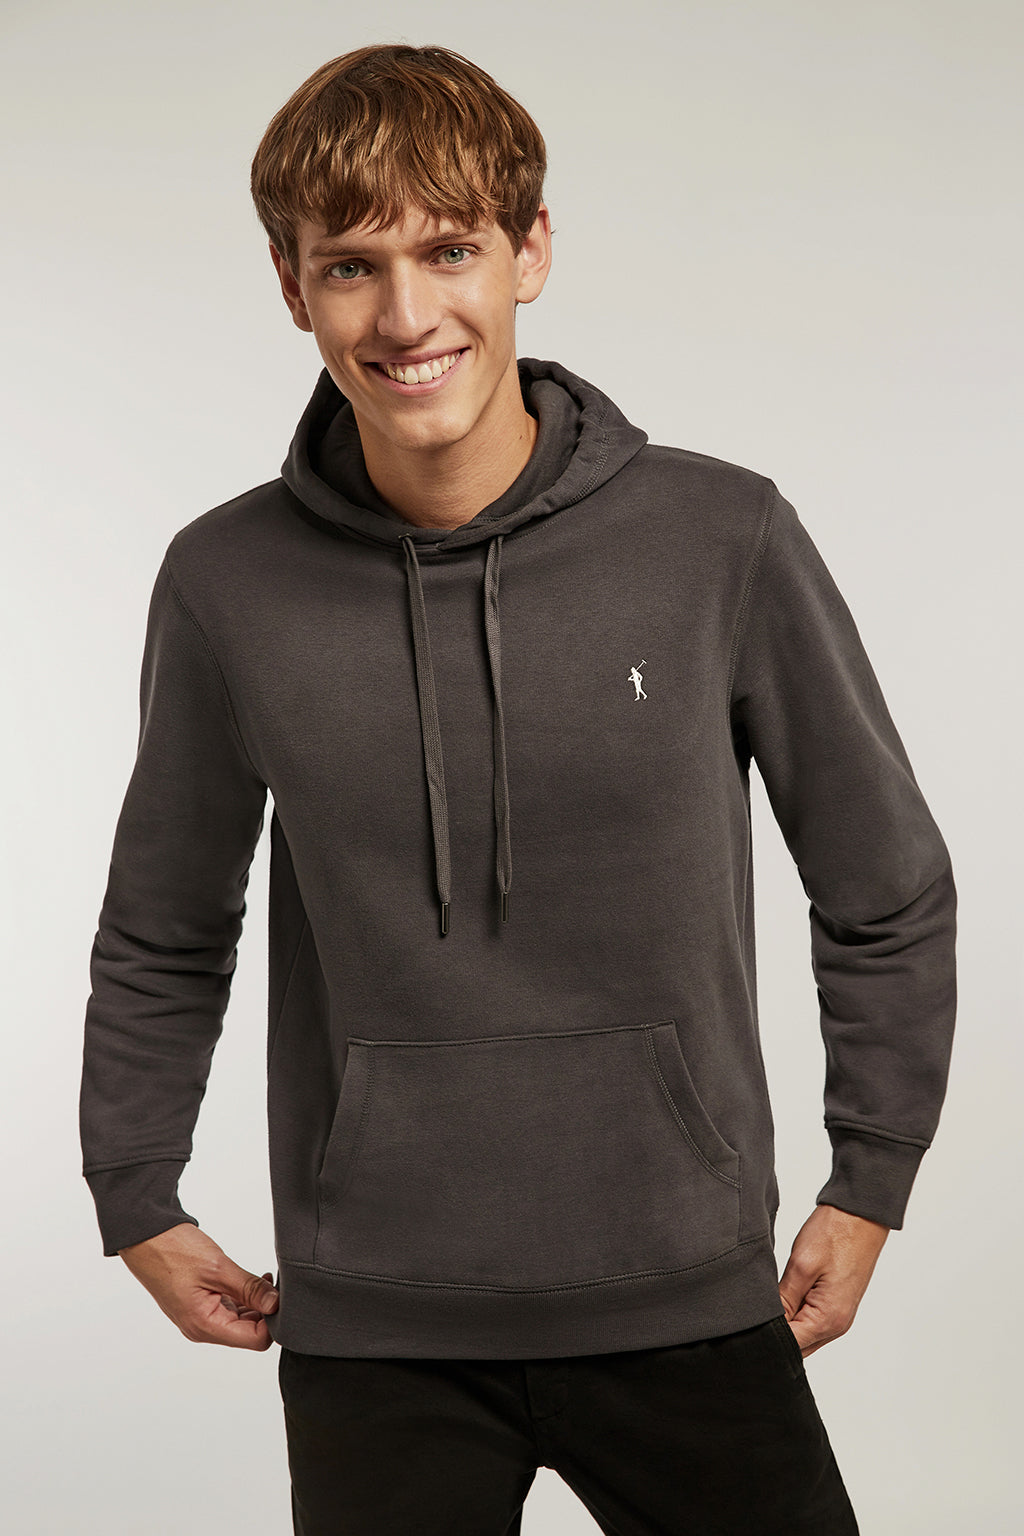 Washed grey hooded sweatshirt with kangaroo pocket